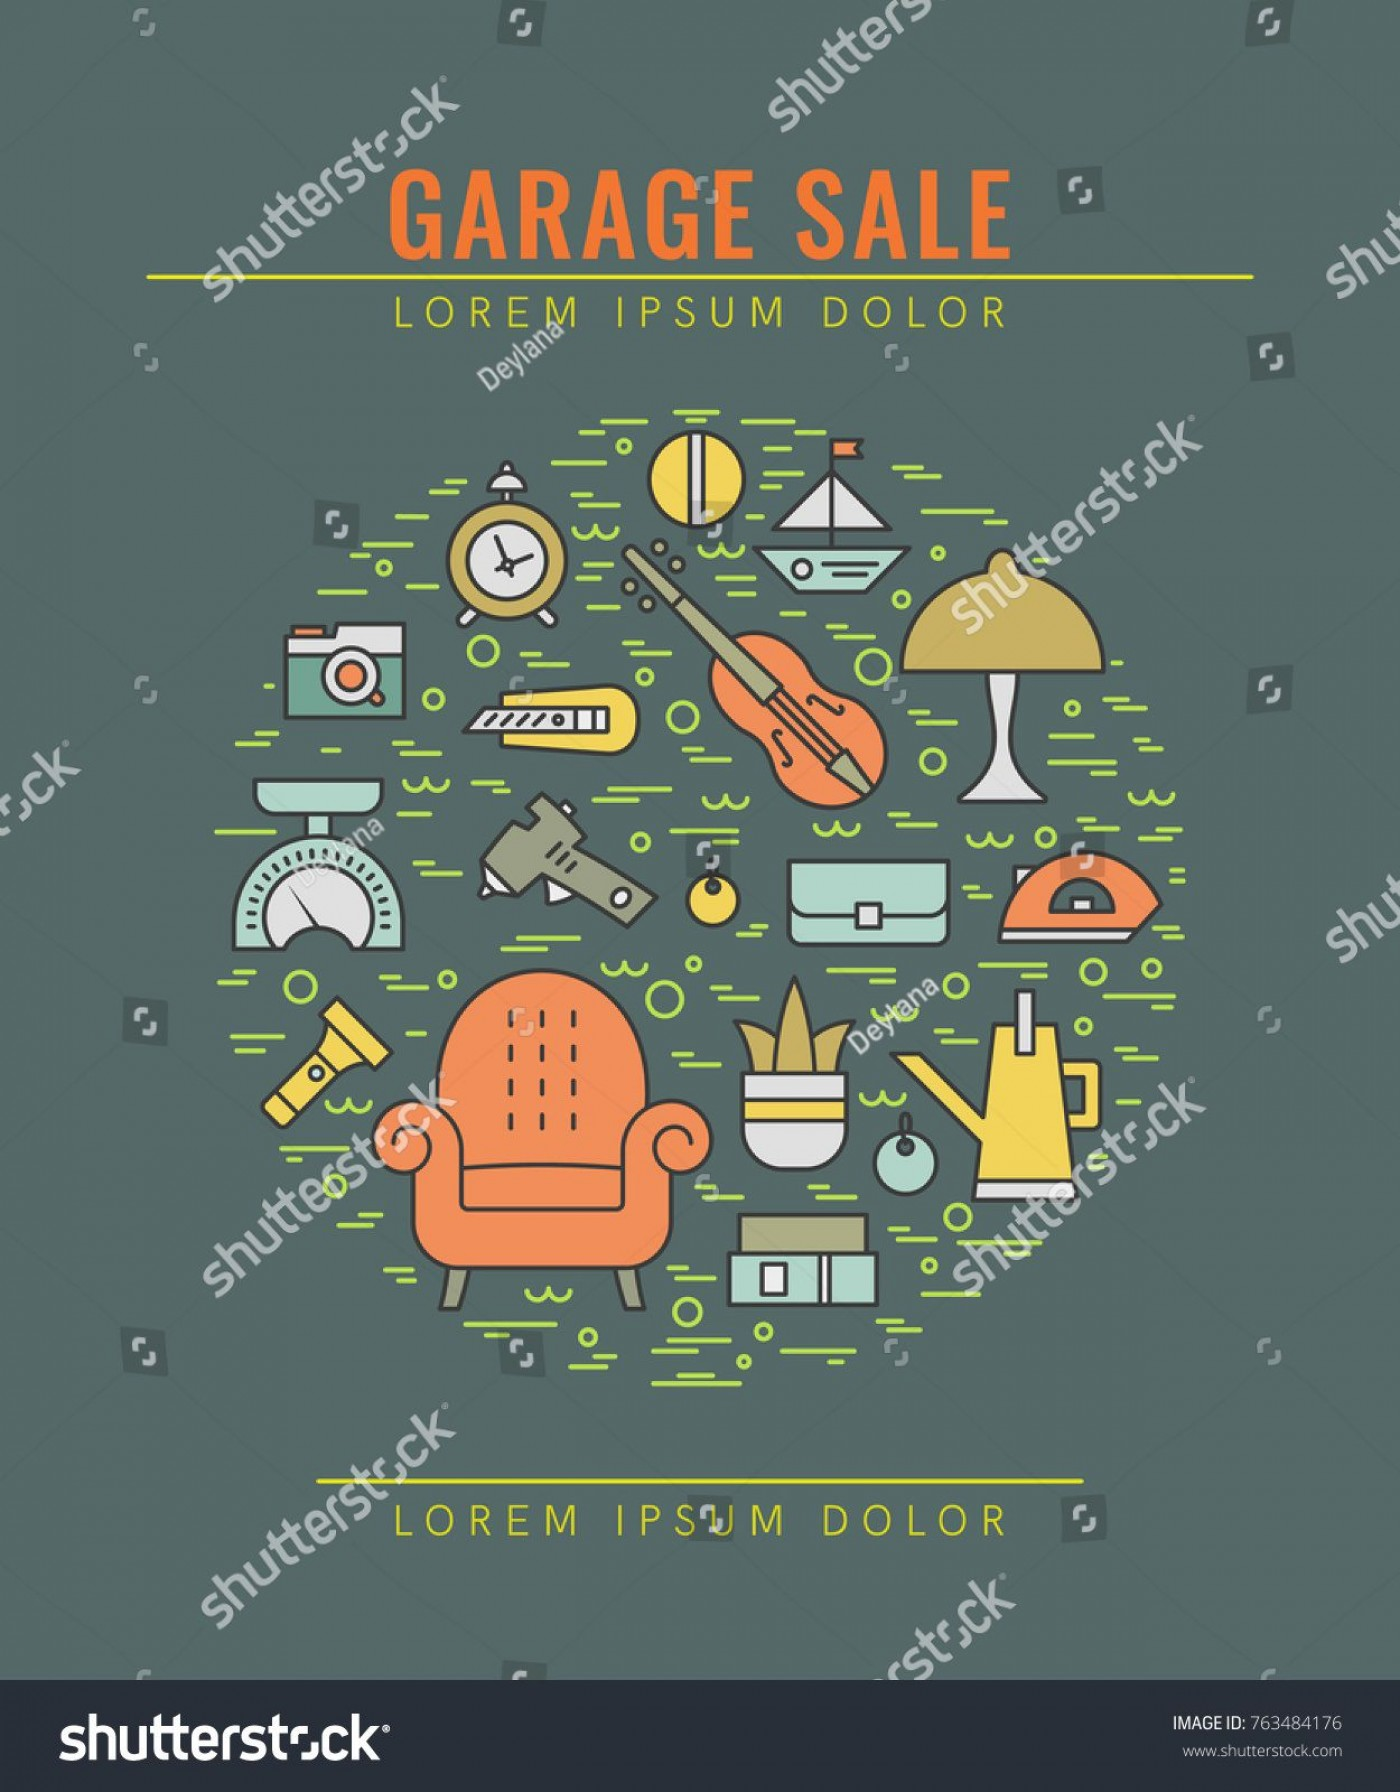 008 Impressive Yard Sale Flyer Template Concept  Free Garage Microsoft Word1400